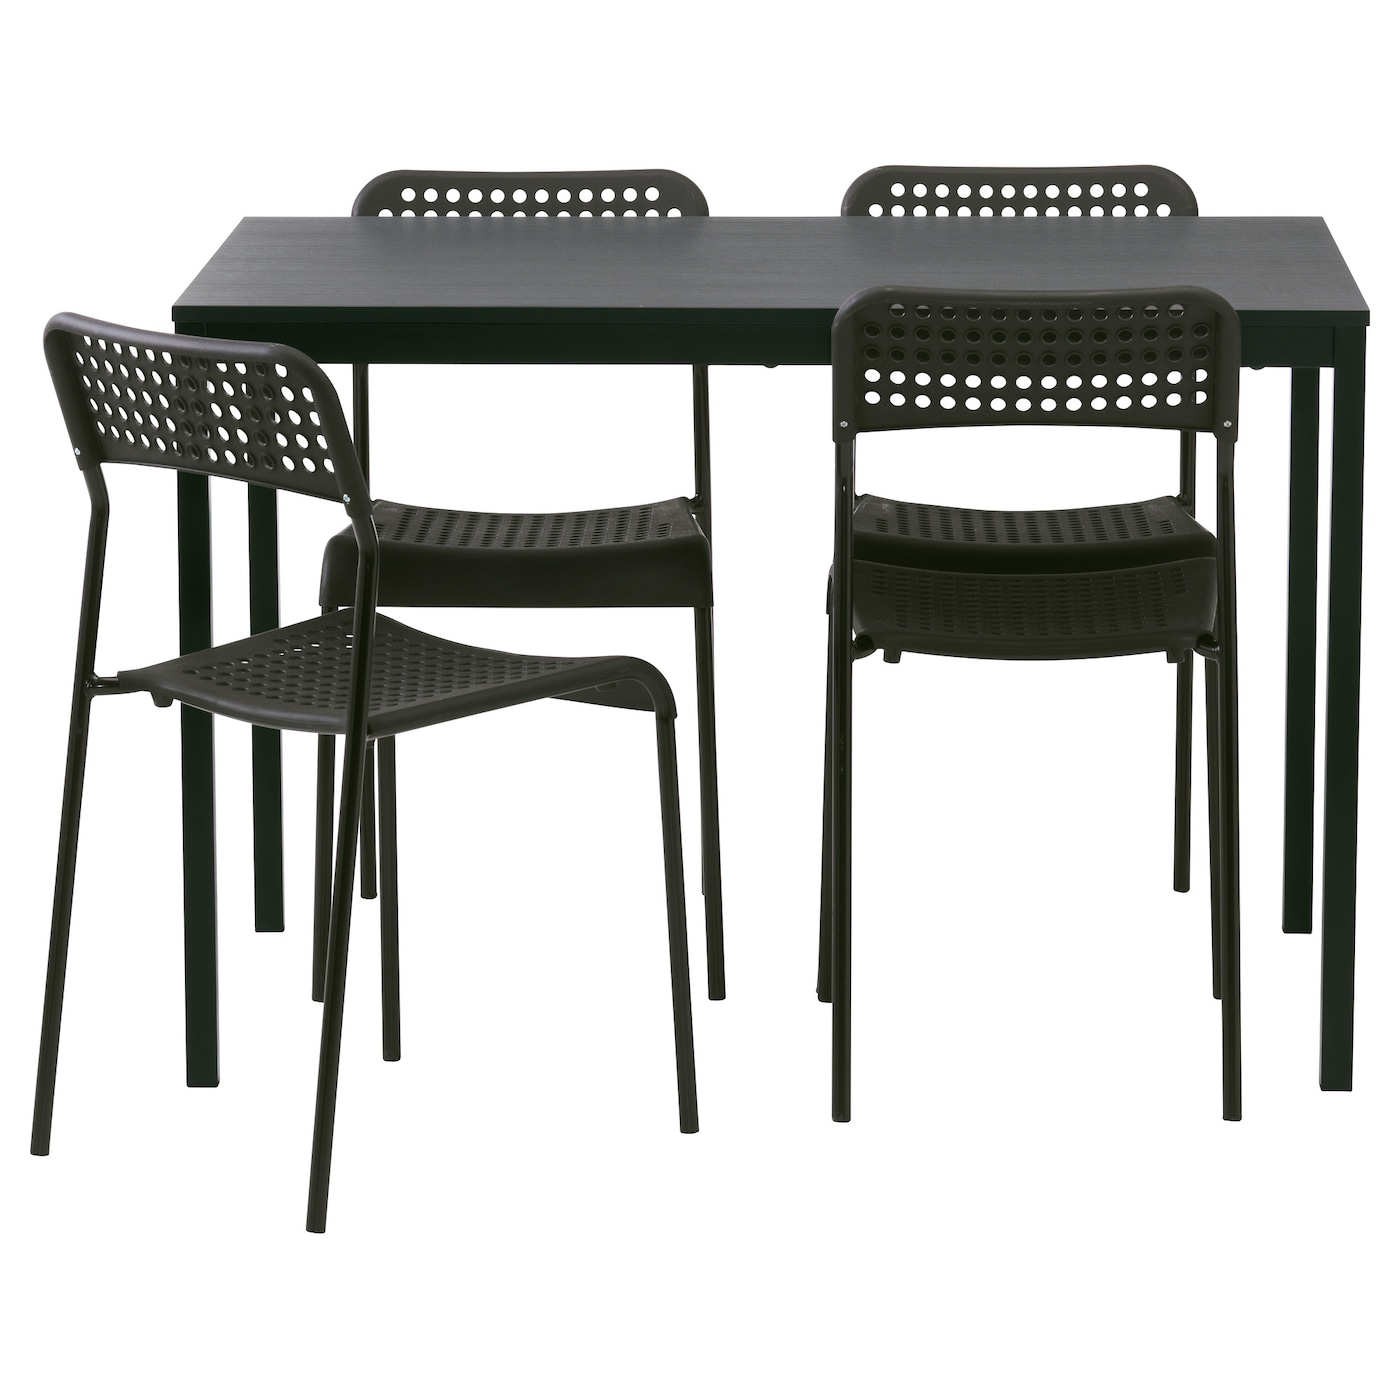 T rend adde table and 4 chairs black 110 cm ikea - Ikea table noire ...